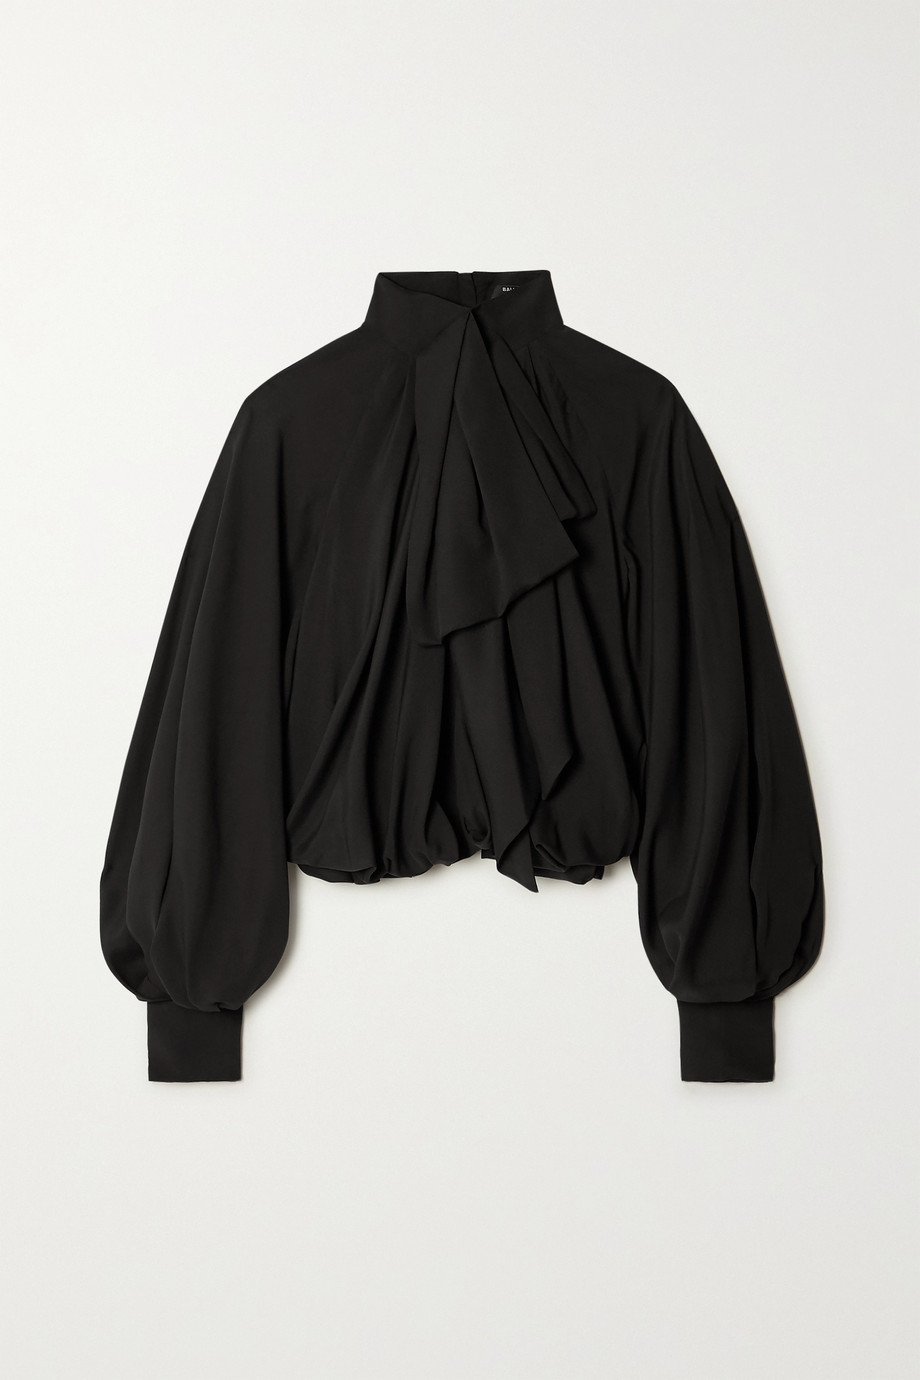 Balmain Pussy-bow gathered silk blouse